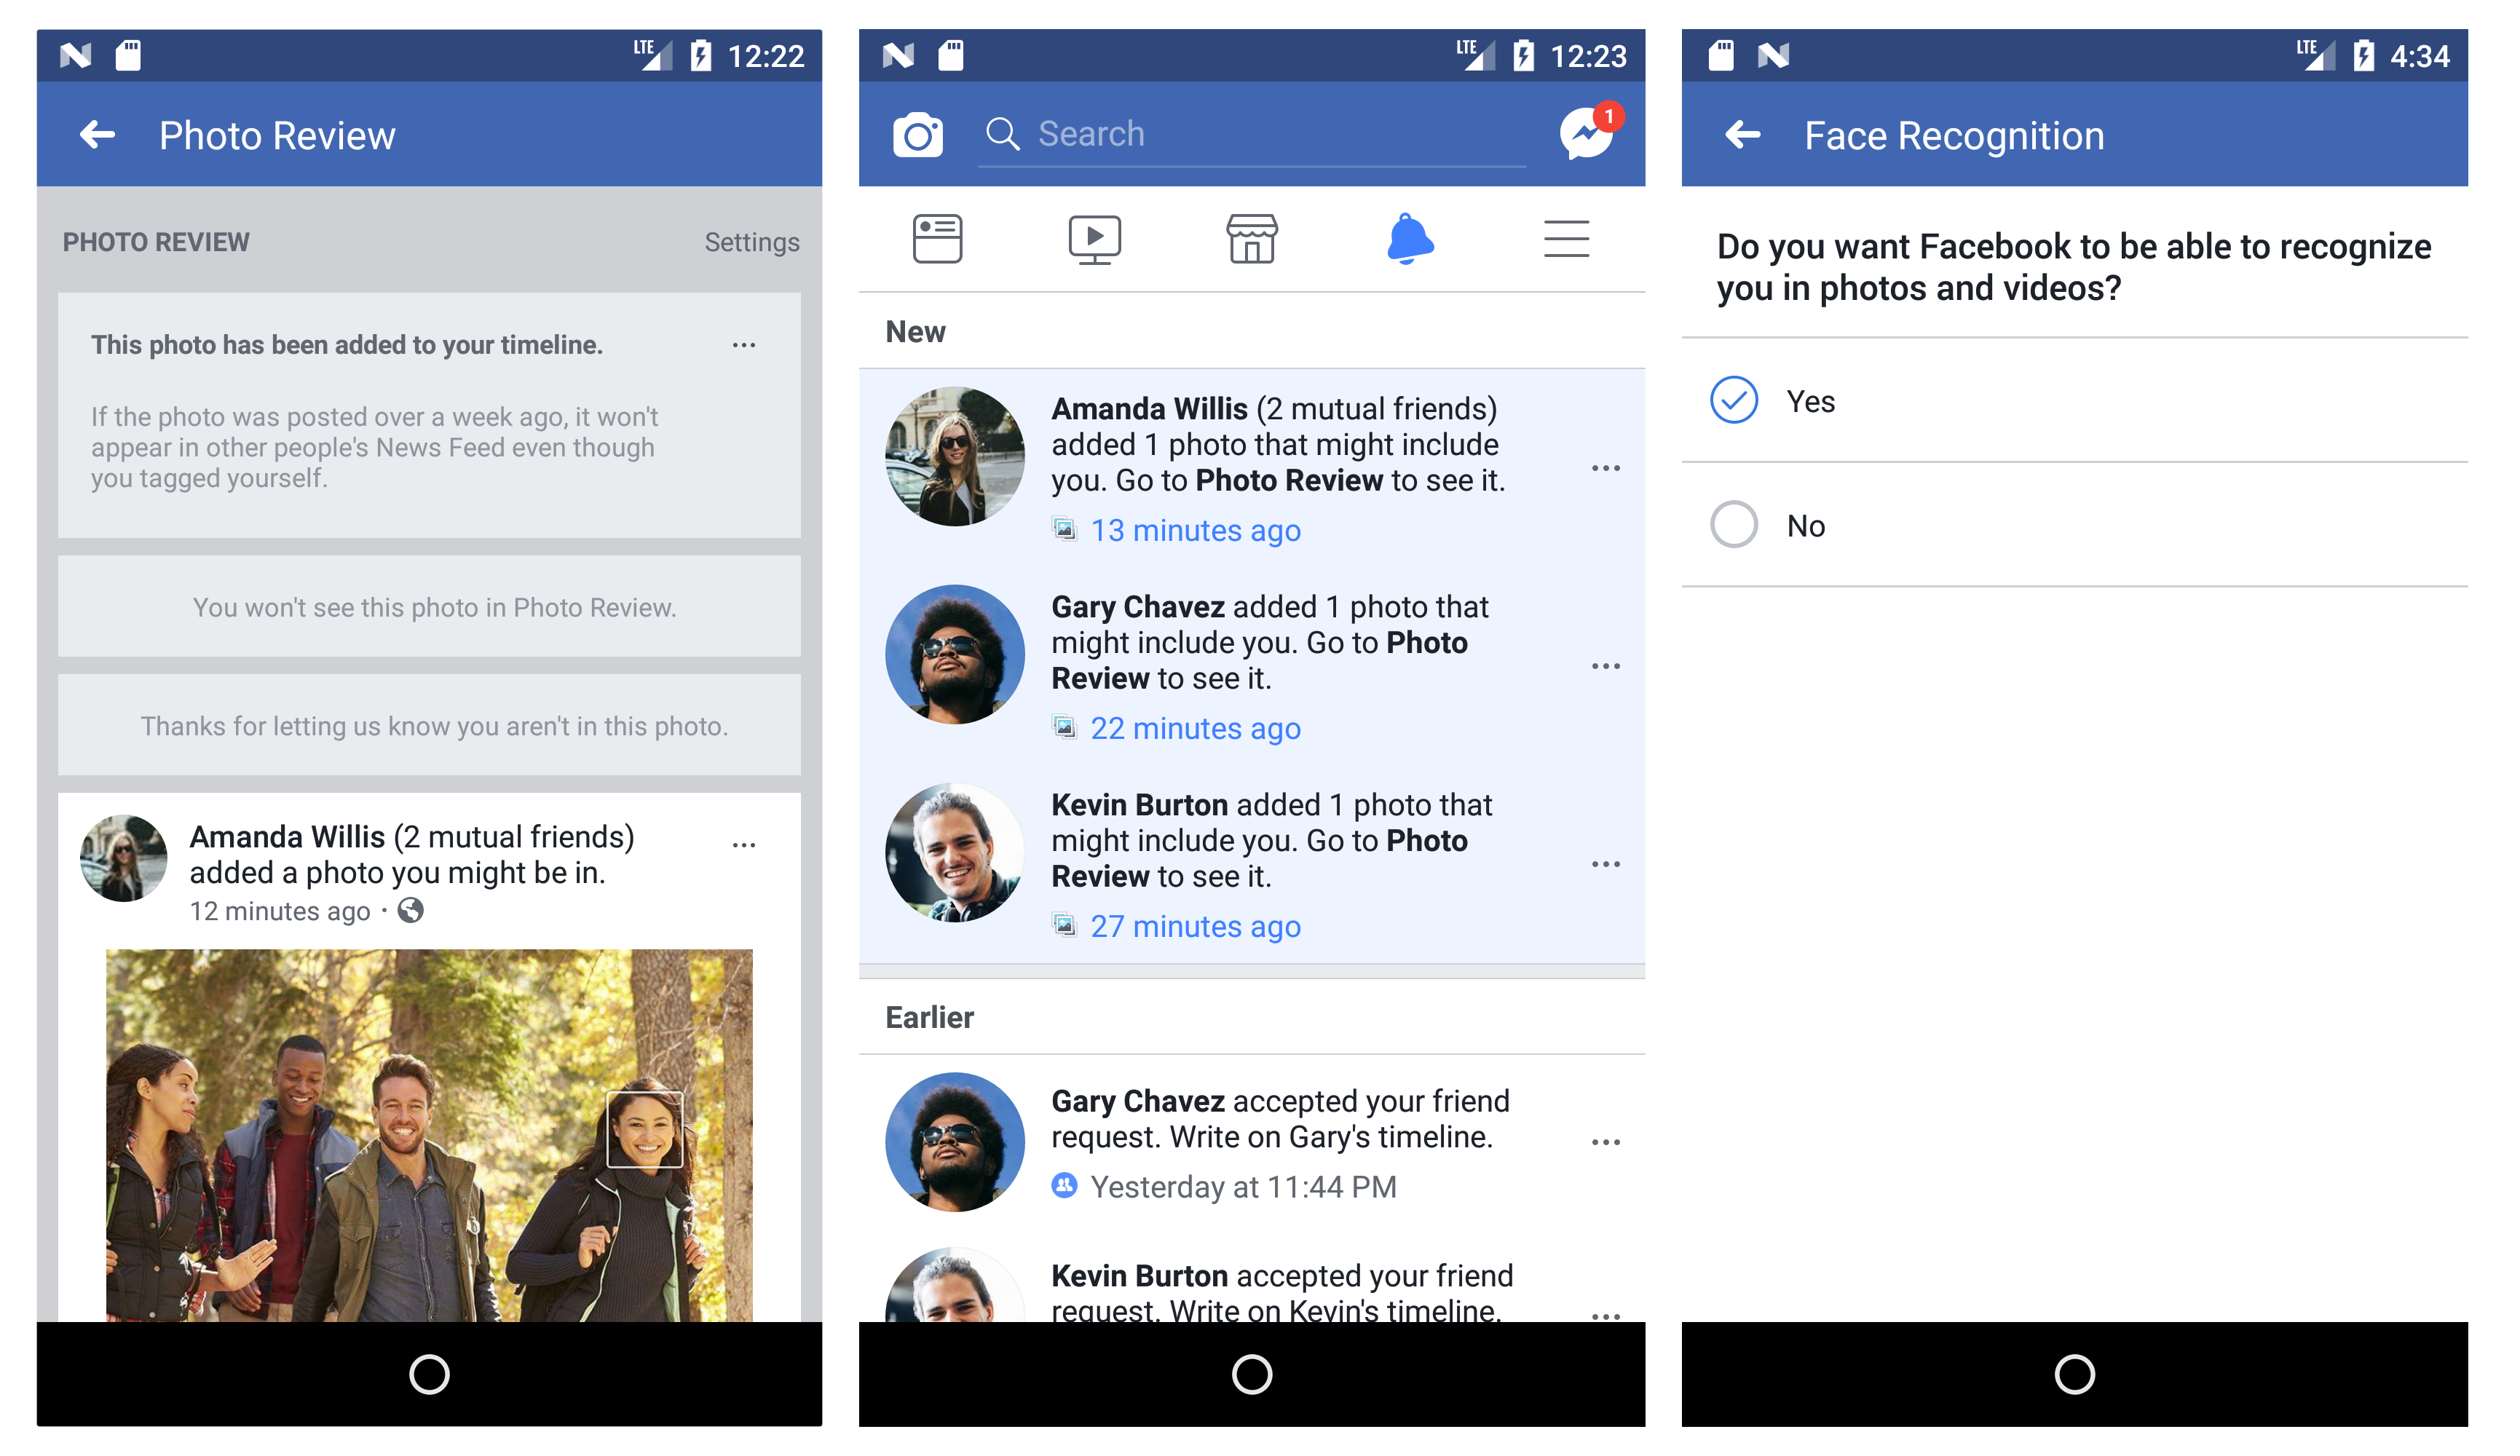 Now you can tell Facebook to ignore your face